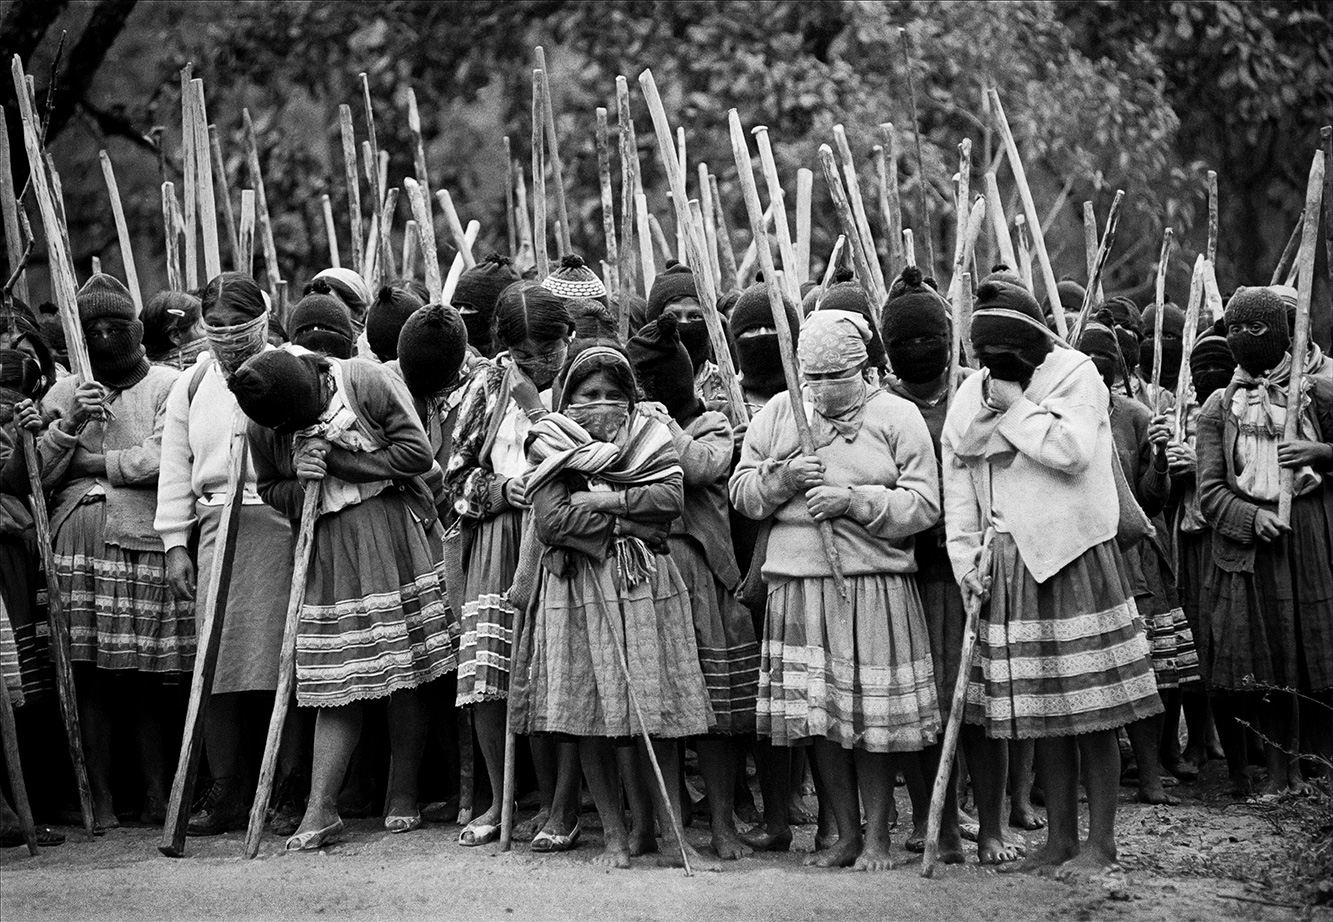 ezln-stick-weapons guerillas en mexico